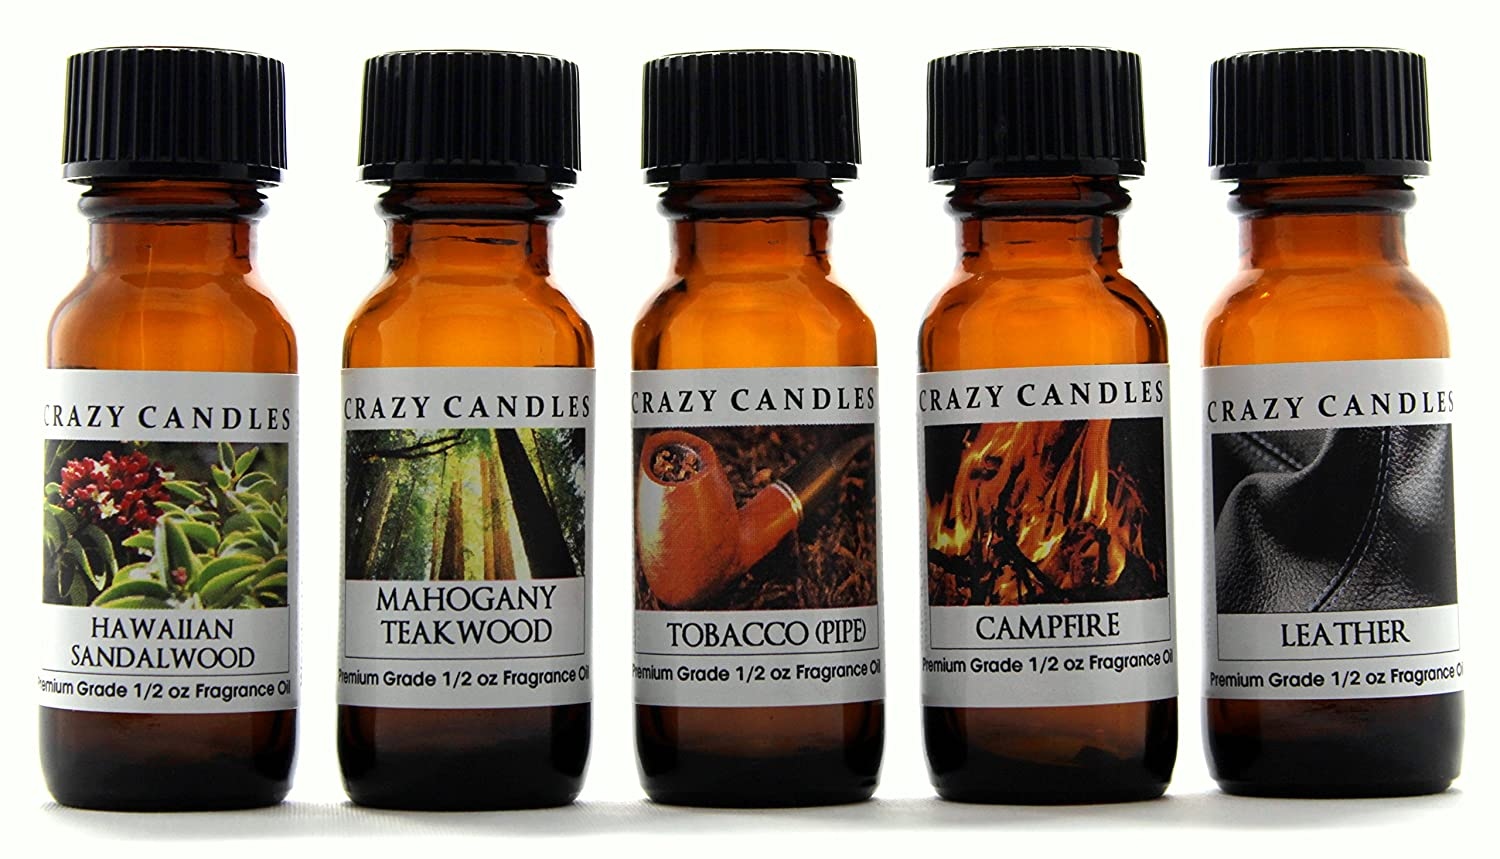 Crazy Candles 5 Bottles Set, 1, Hawaiian Sandalwood 1 Mahogany Teakwood 1 Tobacco (Pipe), 1 Campfire, 1 Leather 1/2 Fl Oz Each (15ml) Premium Grade Scented Fragrance Oils